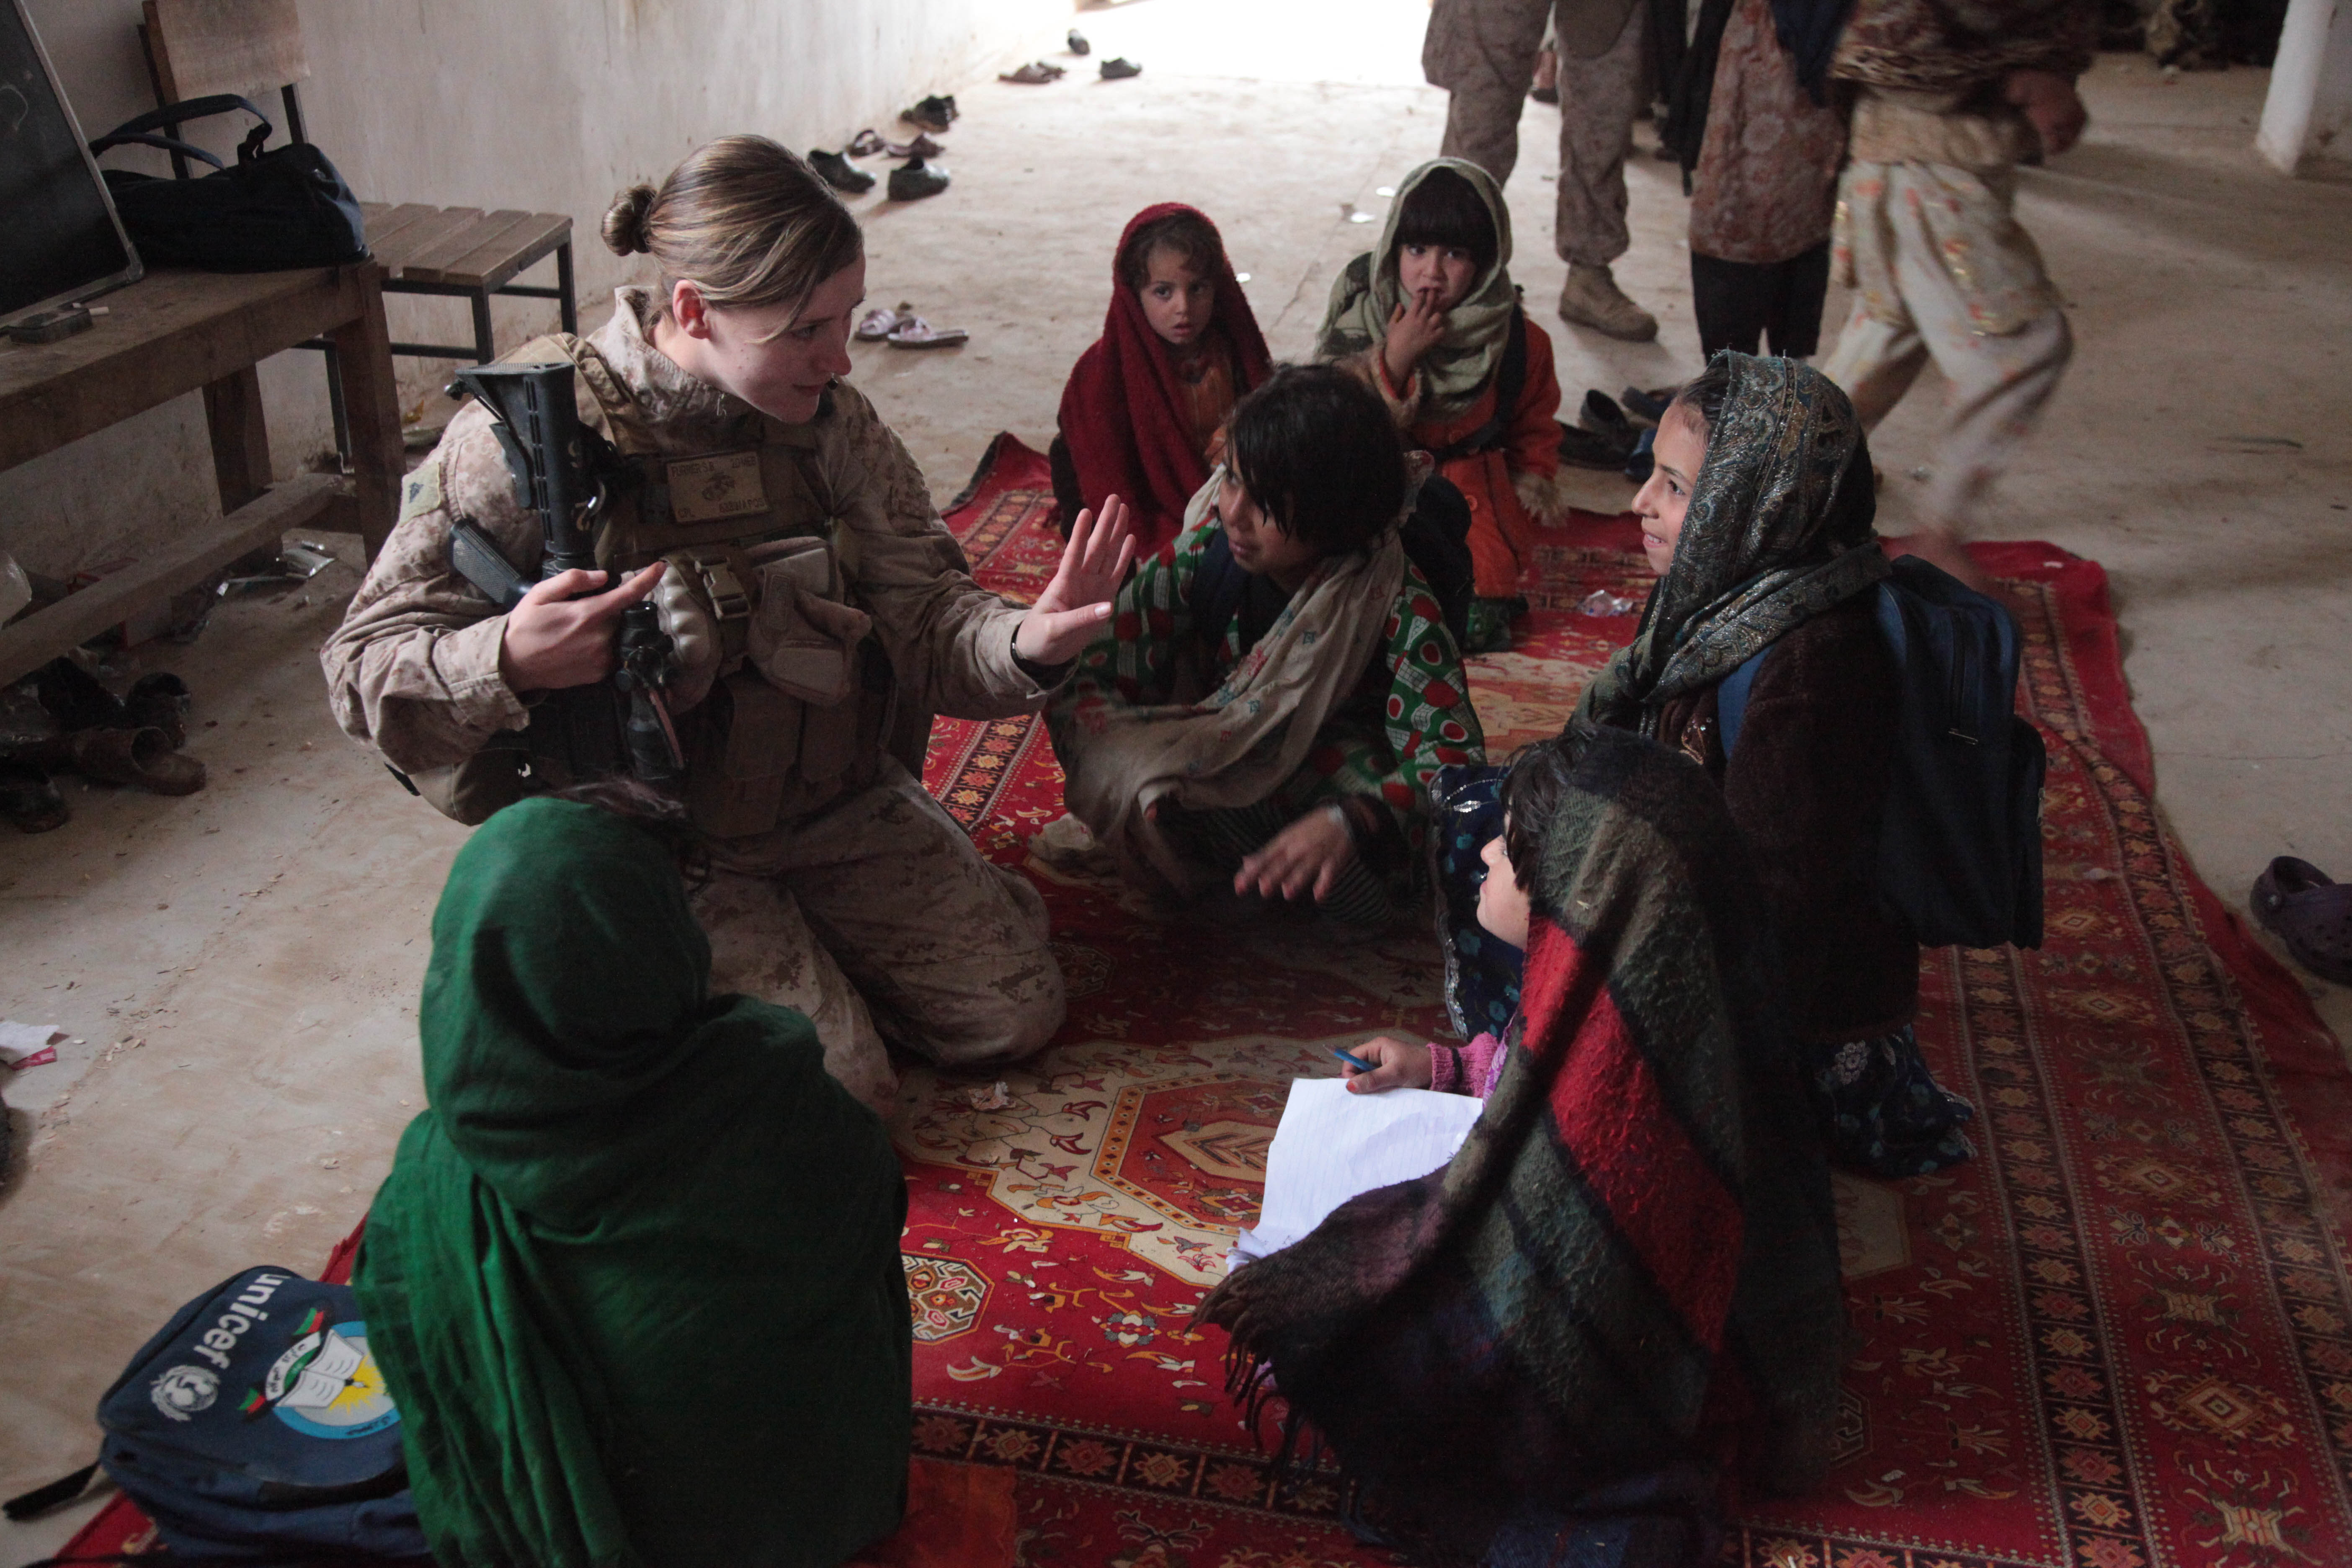 marine hindu single women The first two infantry women in the marines were assigned on january 5 to get into the group zayn malik's new single entertainer.